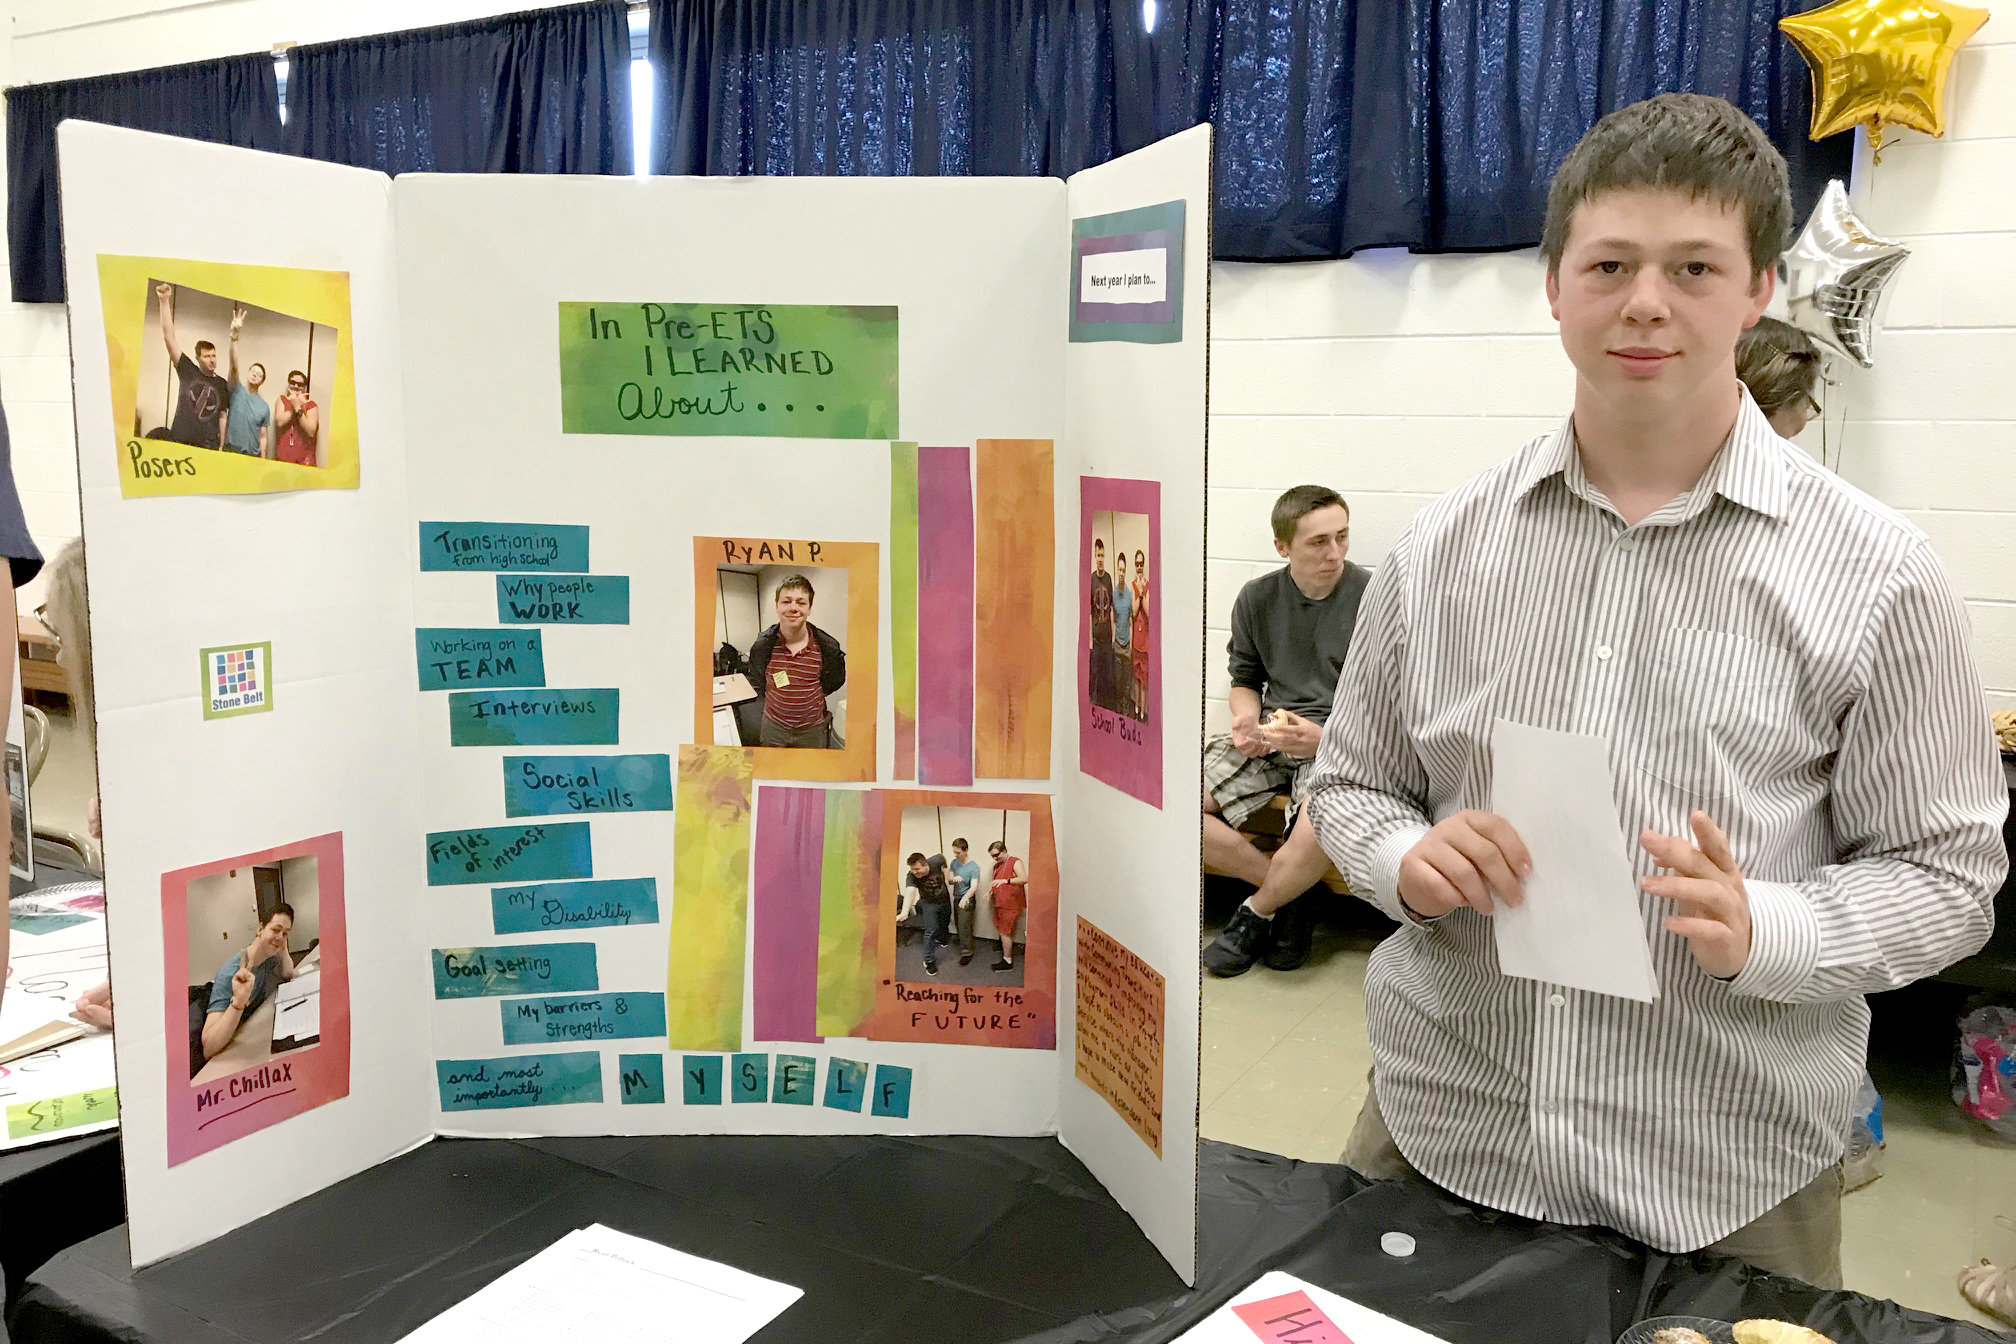 A young man stands behind a table and next to his poster, waiting to talk with visitors about his experience with the Pre-Employment Transition Services program.